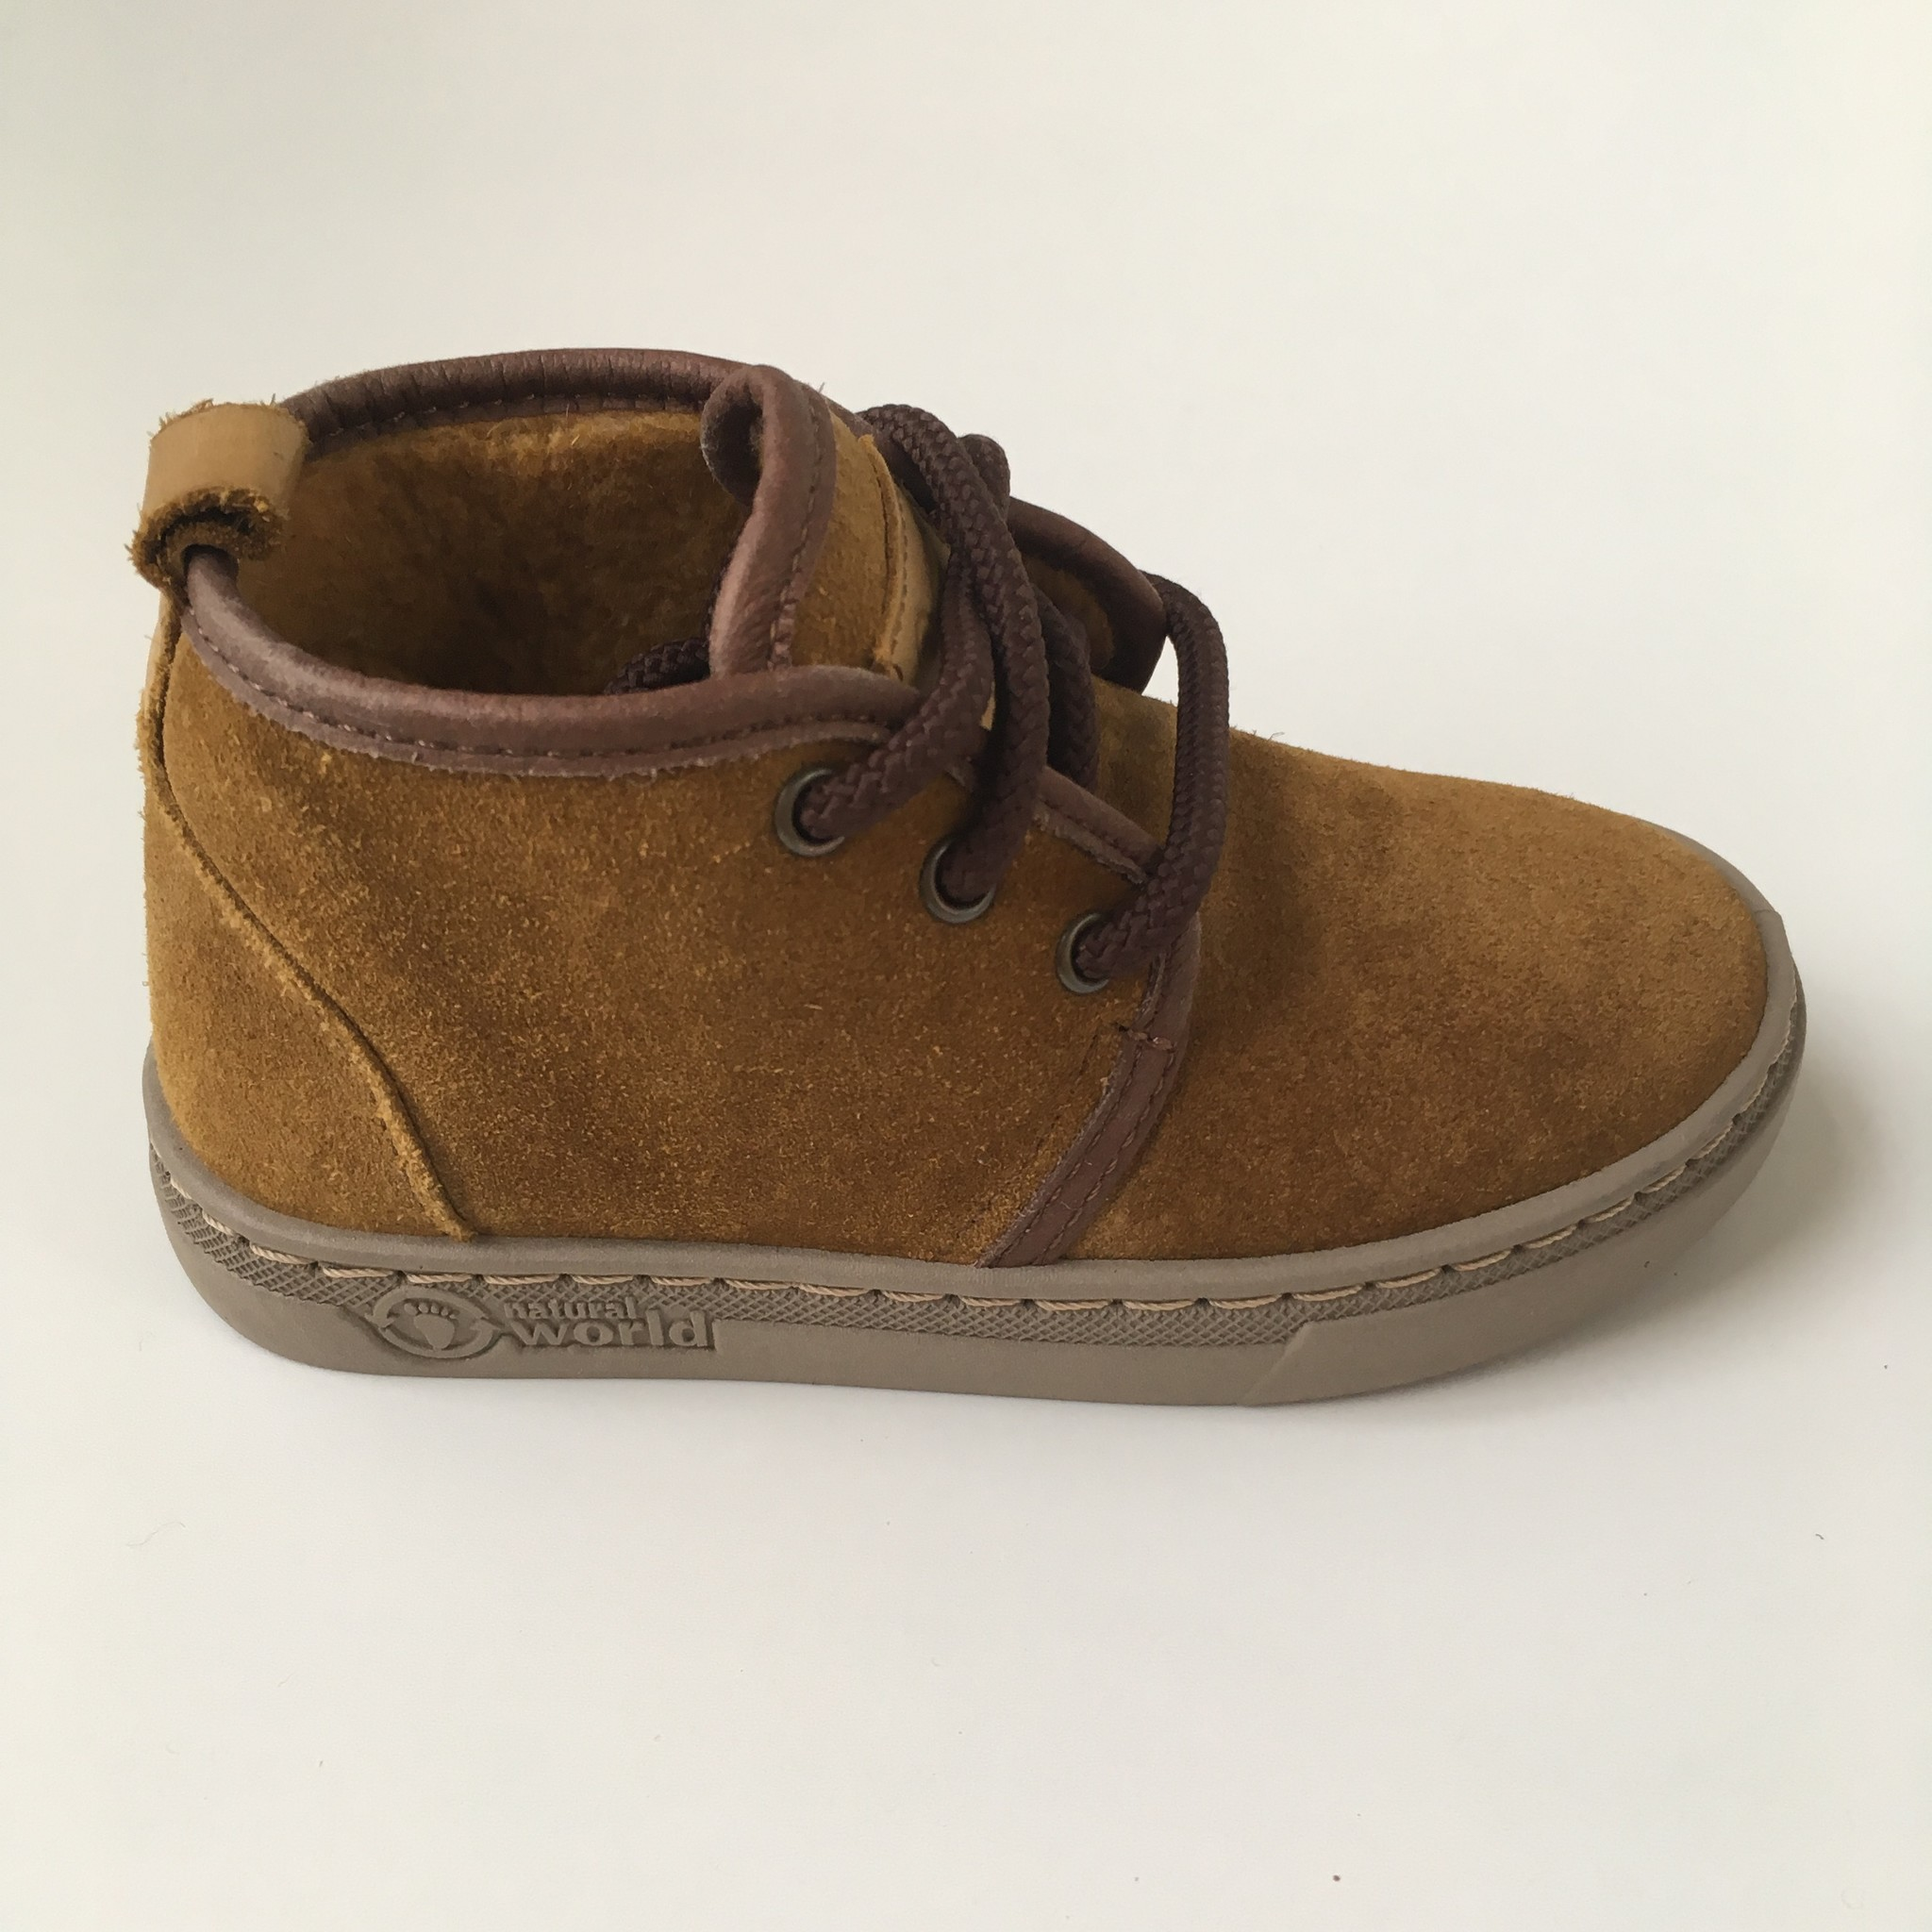 NATURAL WORLD suede ankle booties wool lined ALIM - 100% natural rubber sole - mustard - 25 to 38